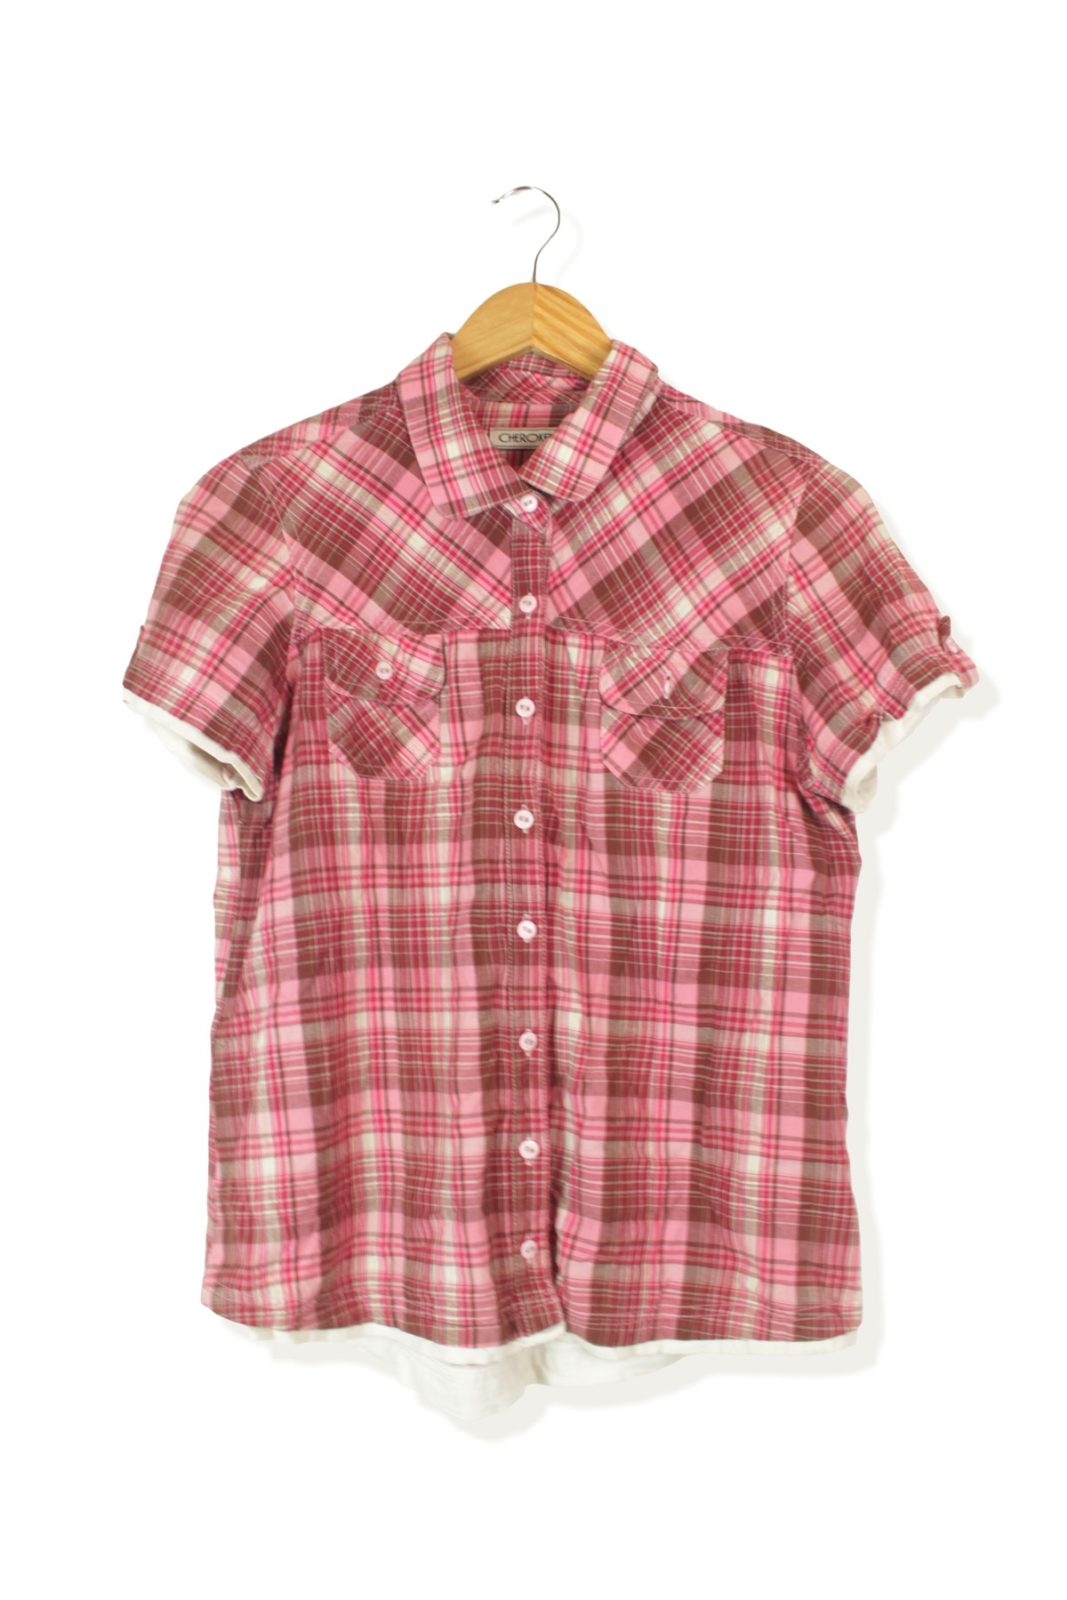 Second-hand Clothing - Women, Tops & Shirts, Second-Hand Clothing